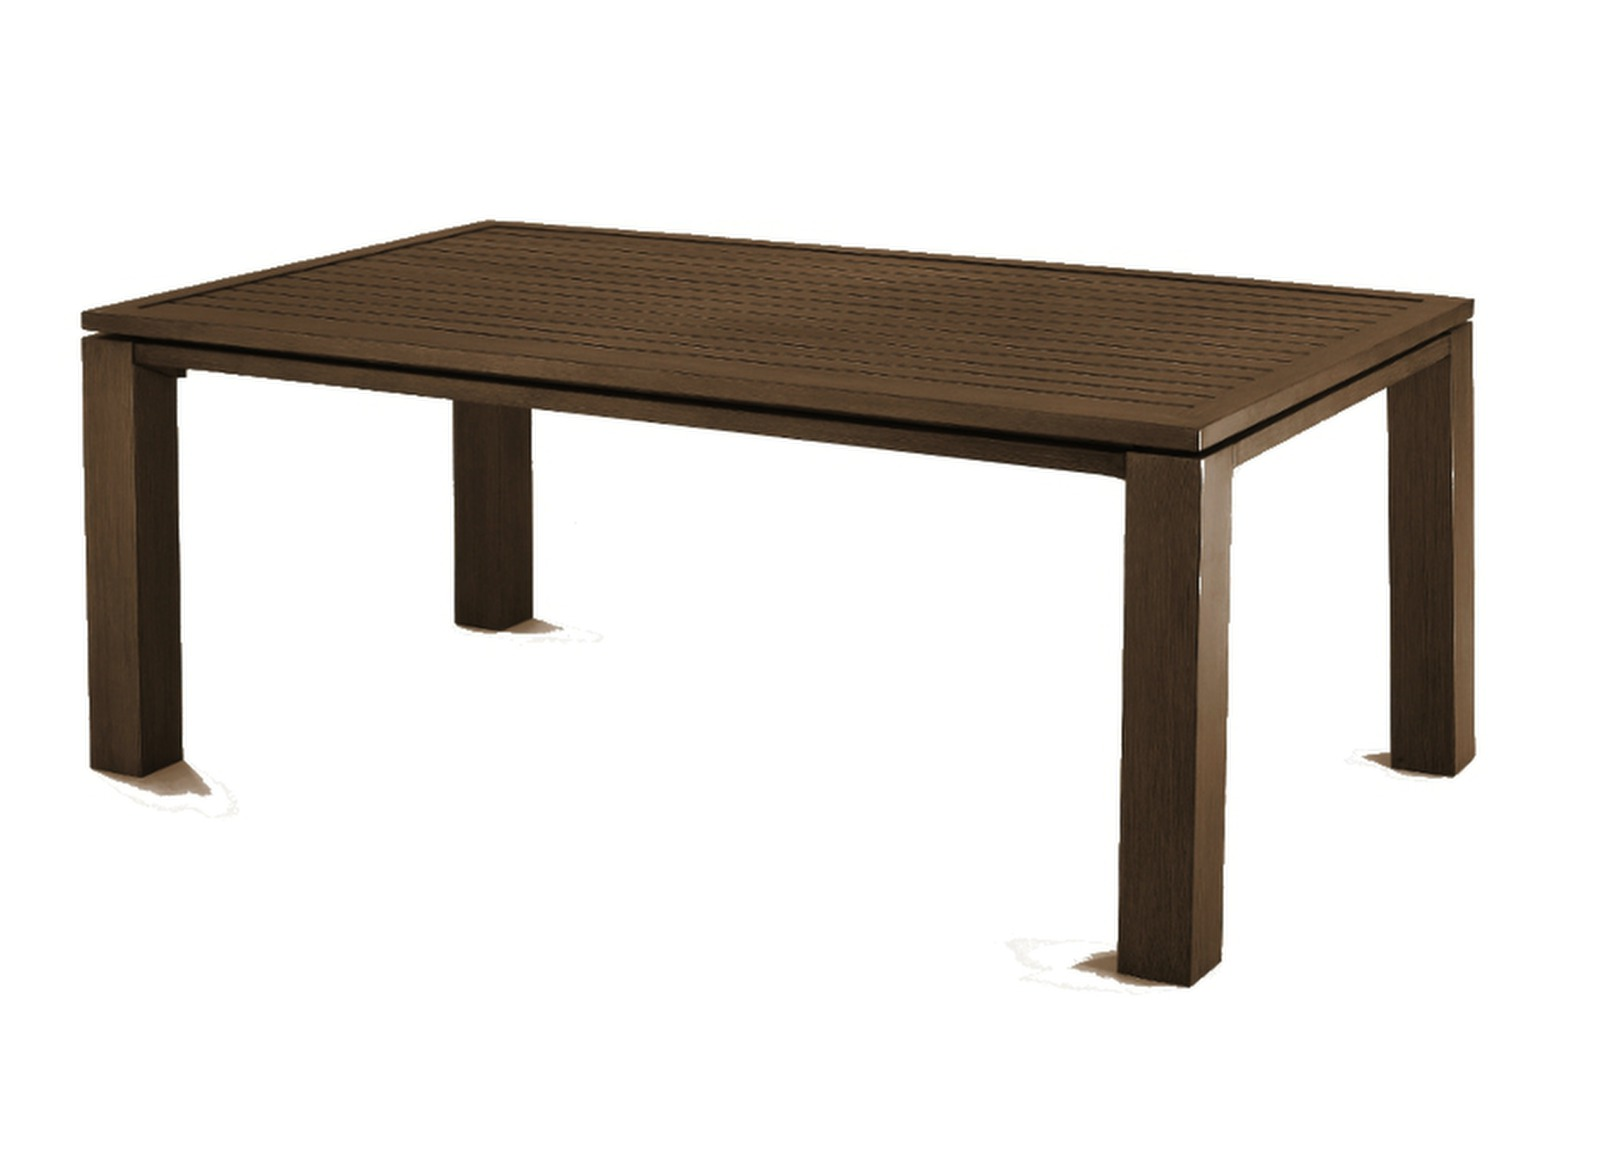 Table 180 Cm Table Latino 180 Cm Tables De Jardin Meubles De Jardin